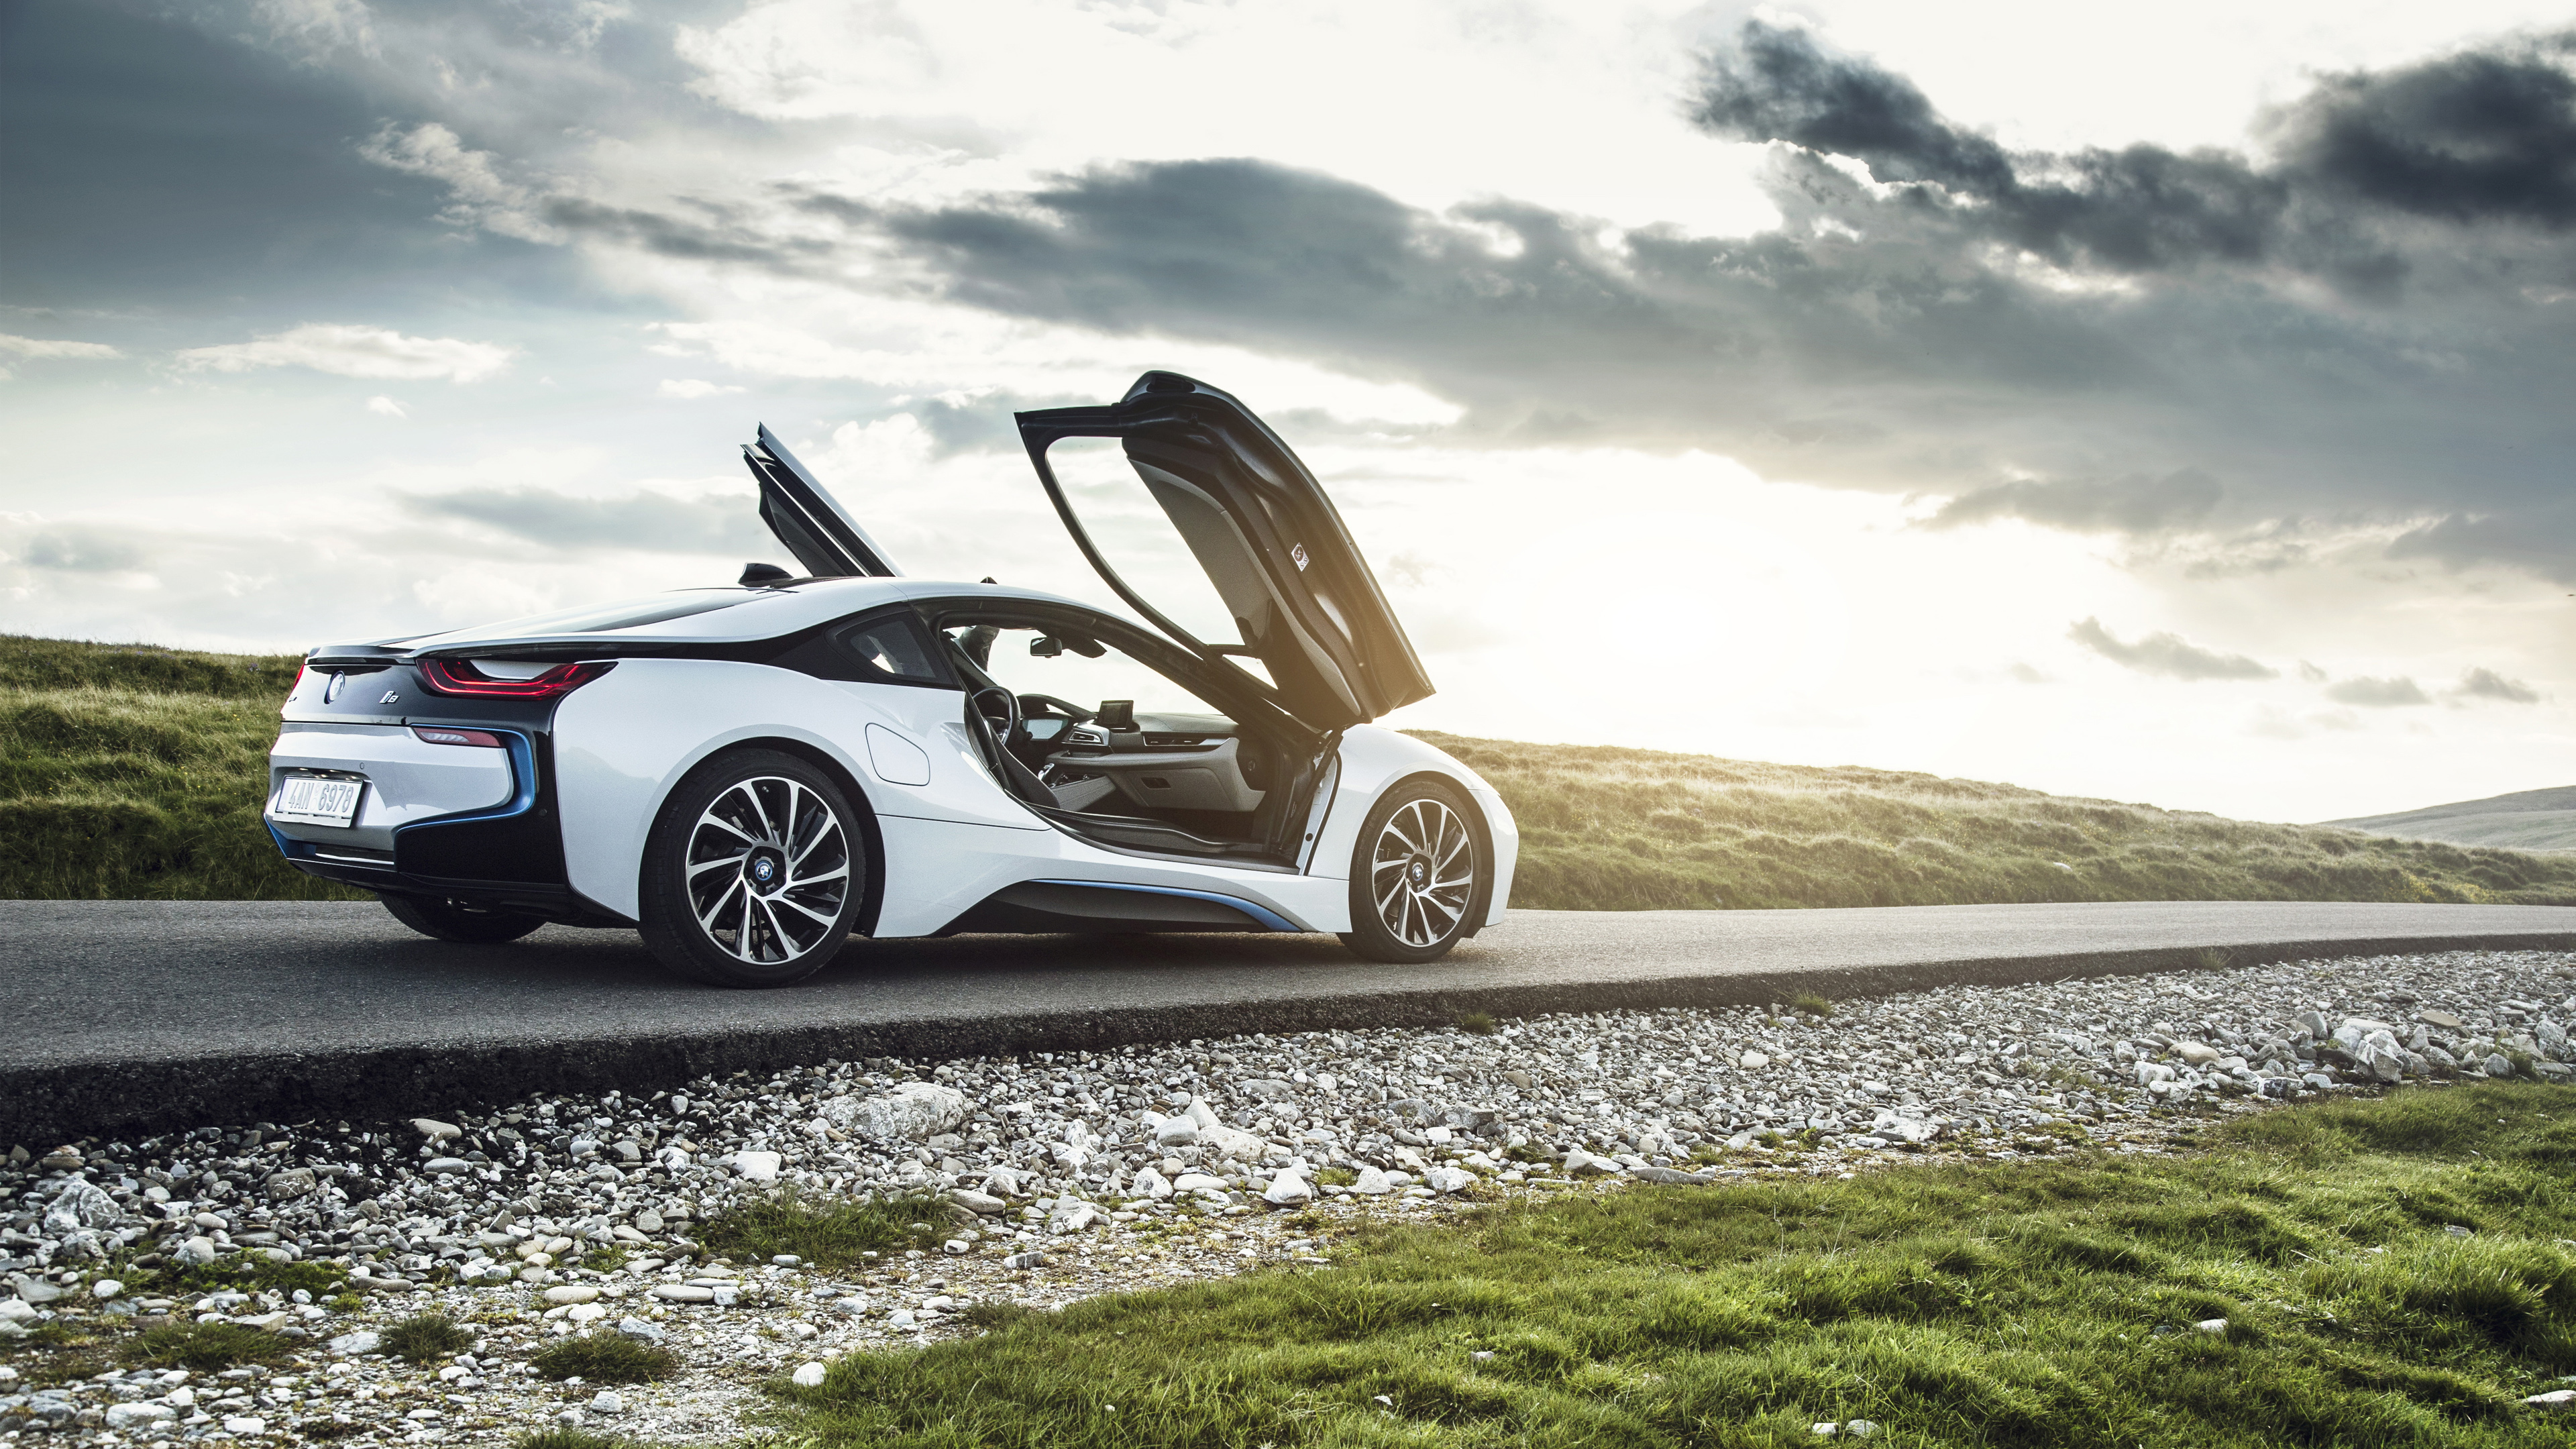 BMW i8 Side View Wallpaper | HD Car Wallpapers | ID #6004